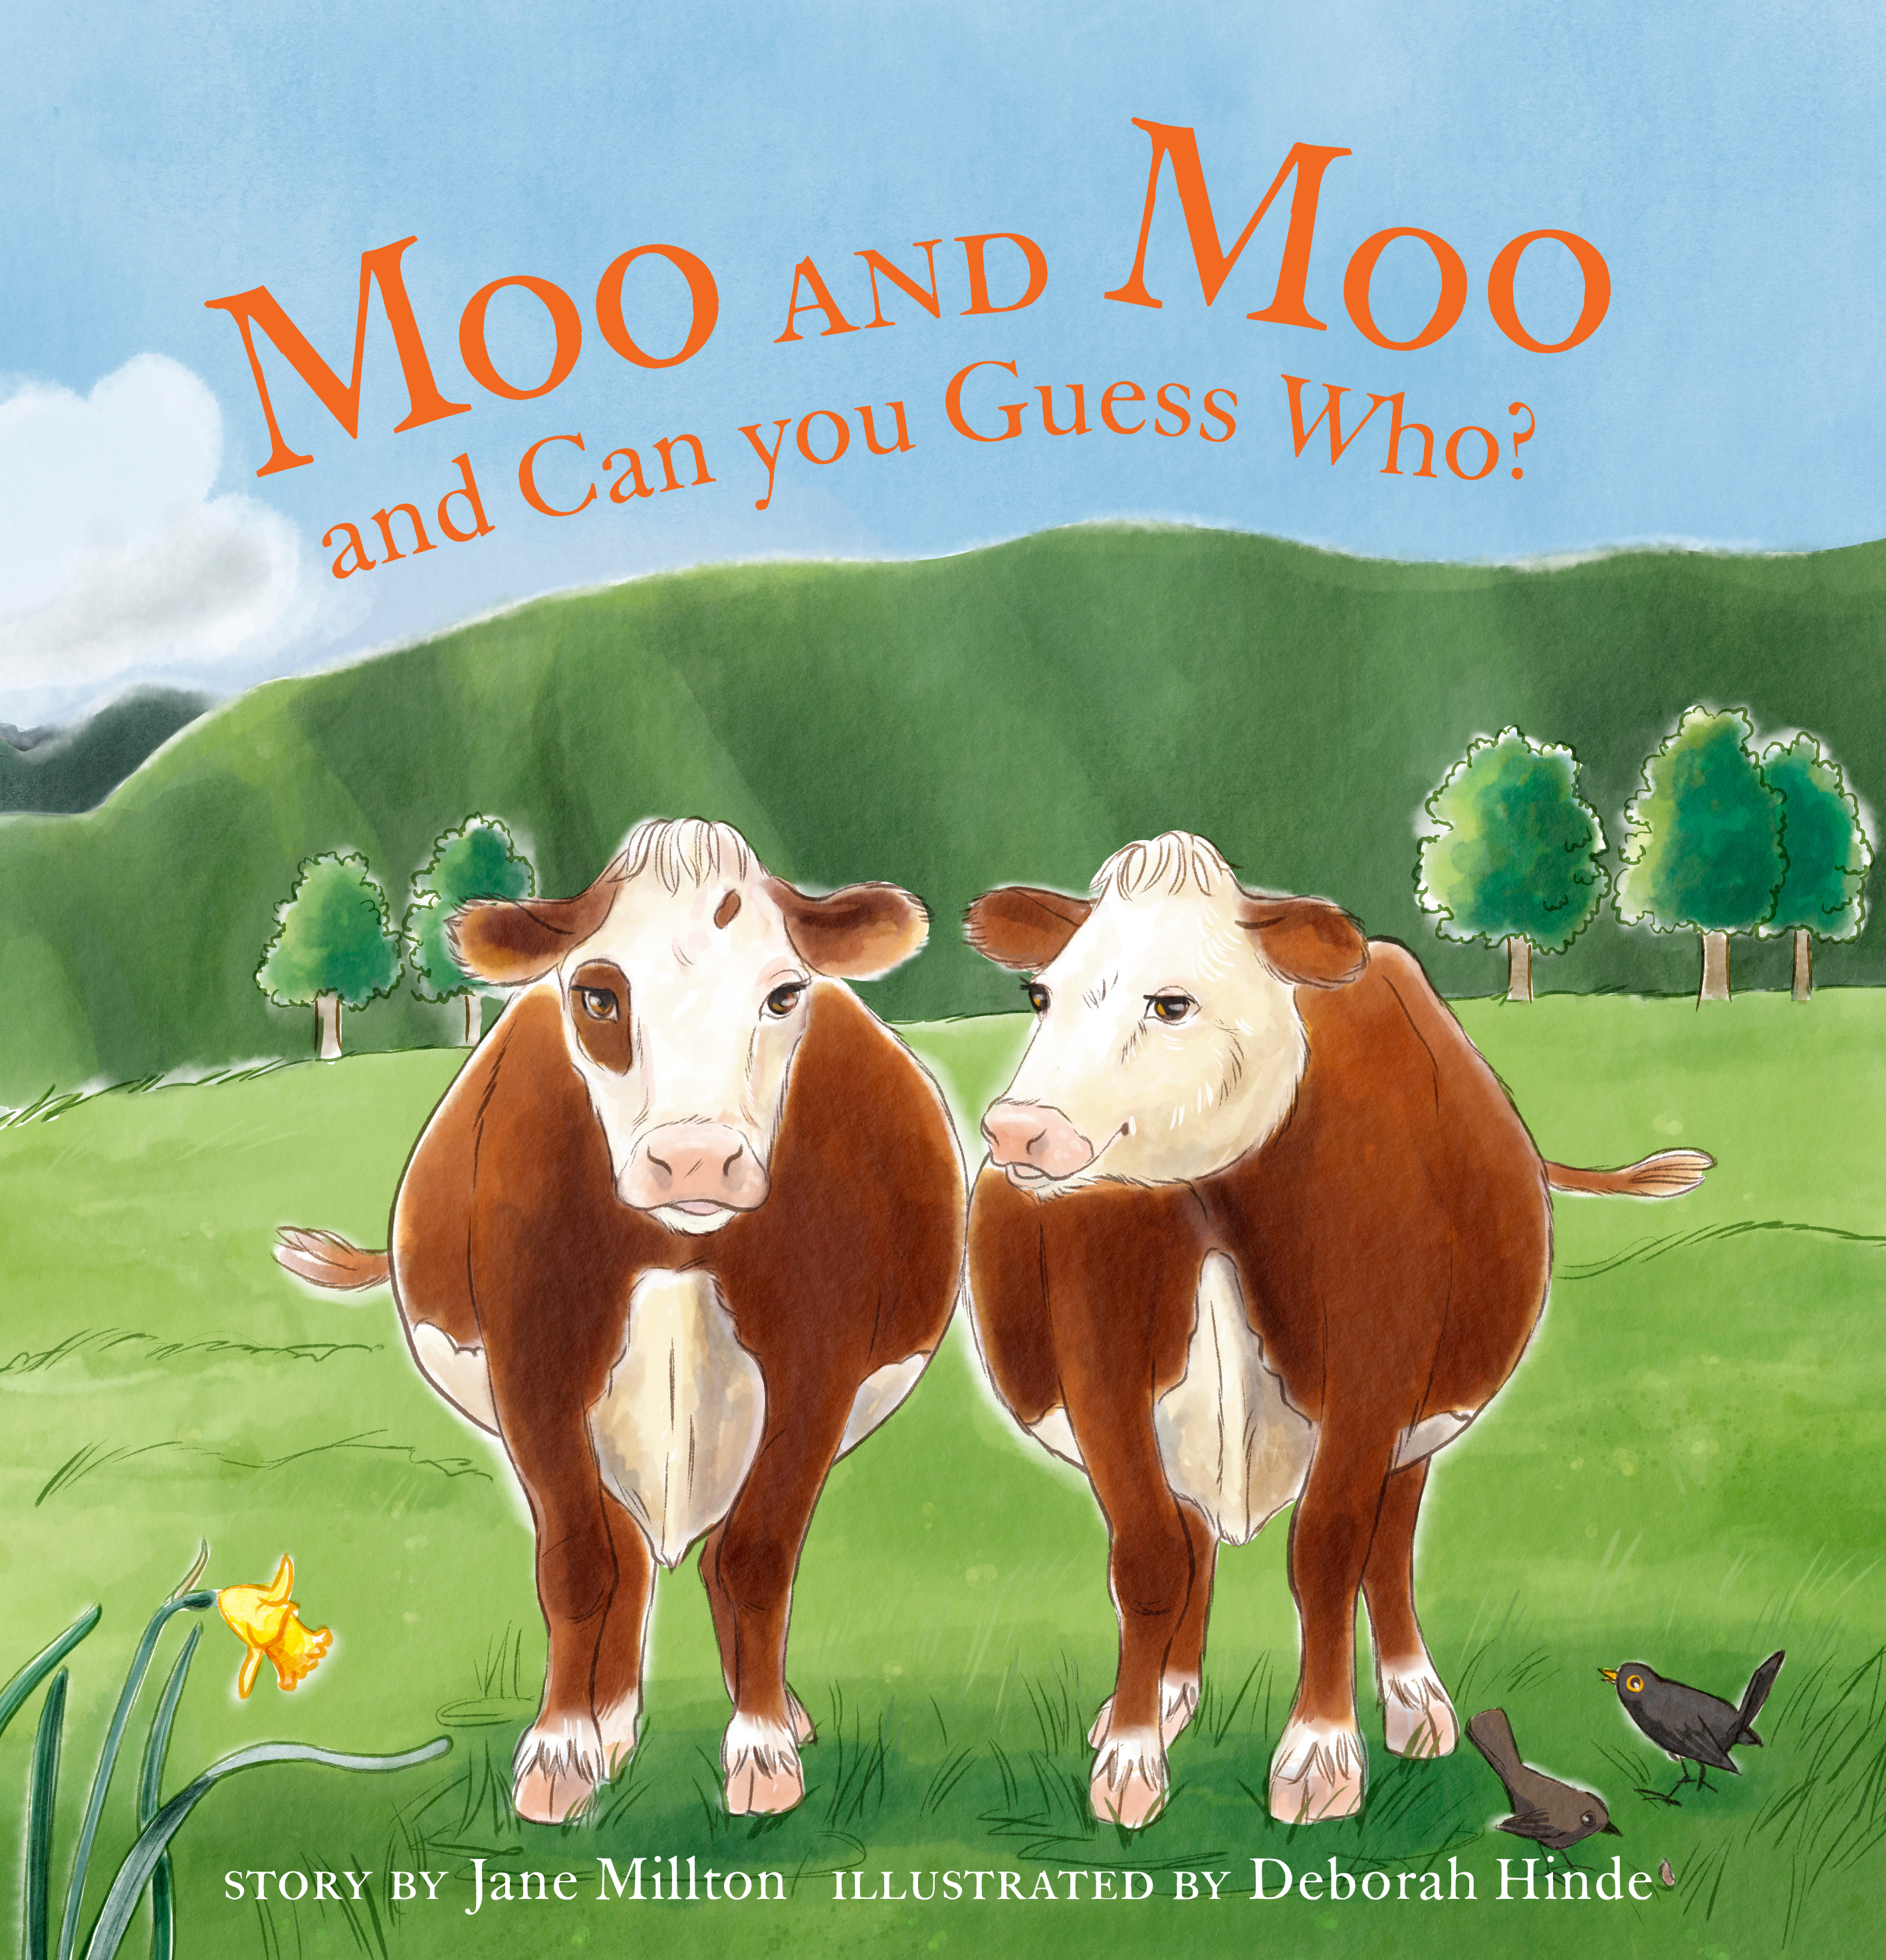 Moo and Moo and Can You Guess Who? - Jane Millton ...